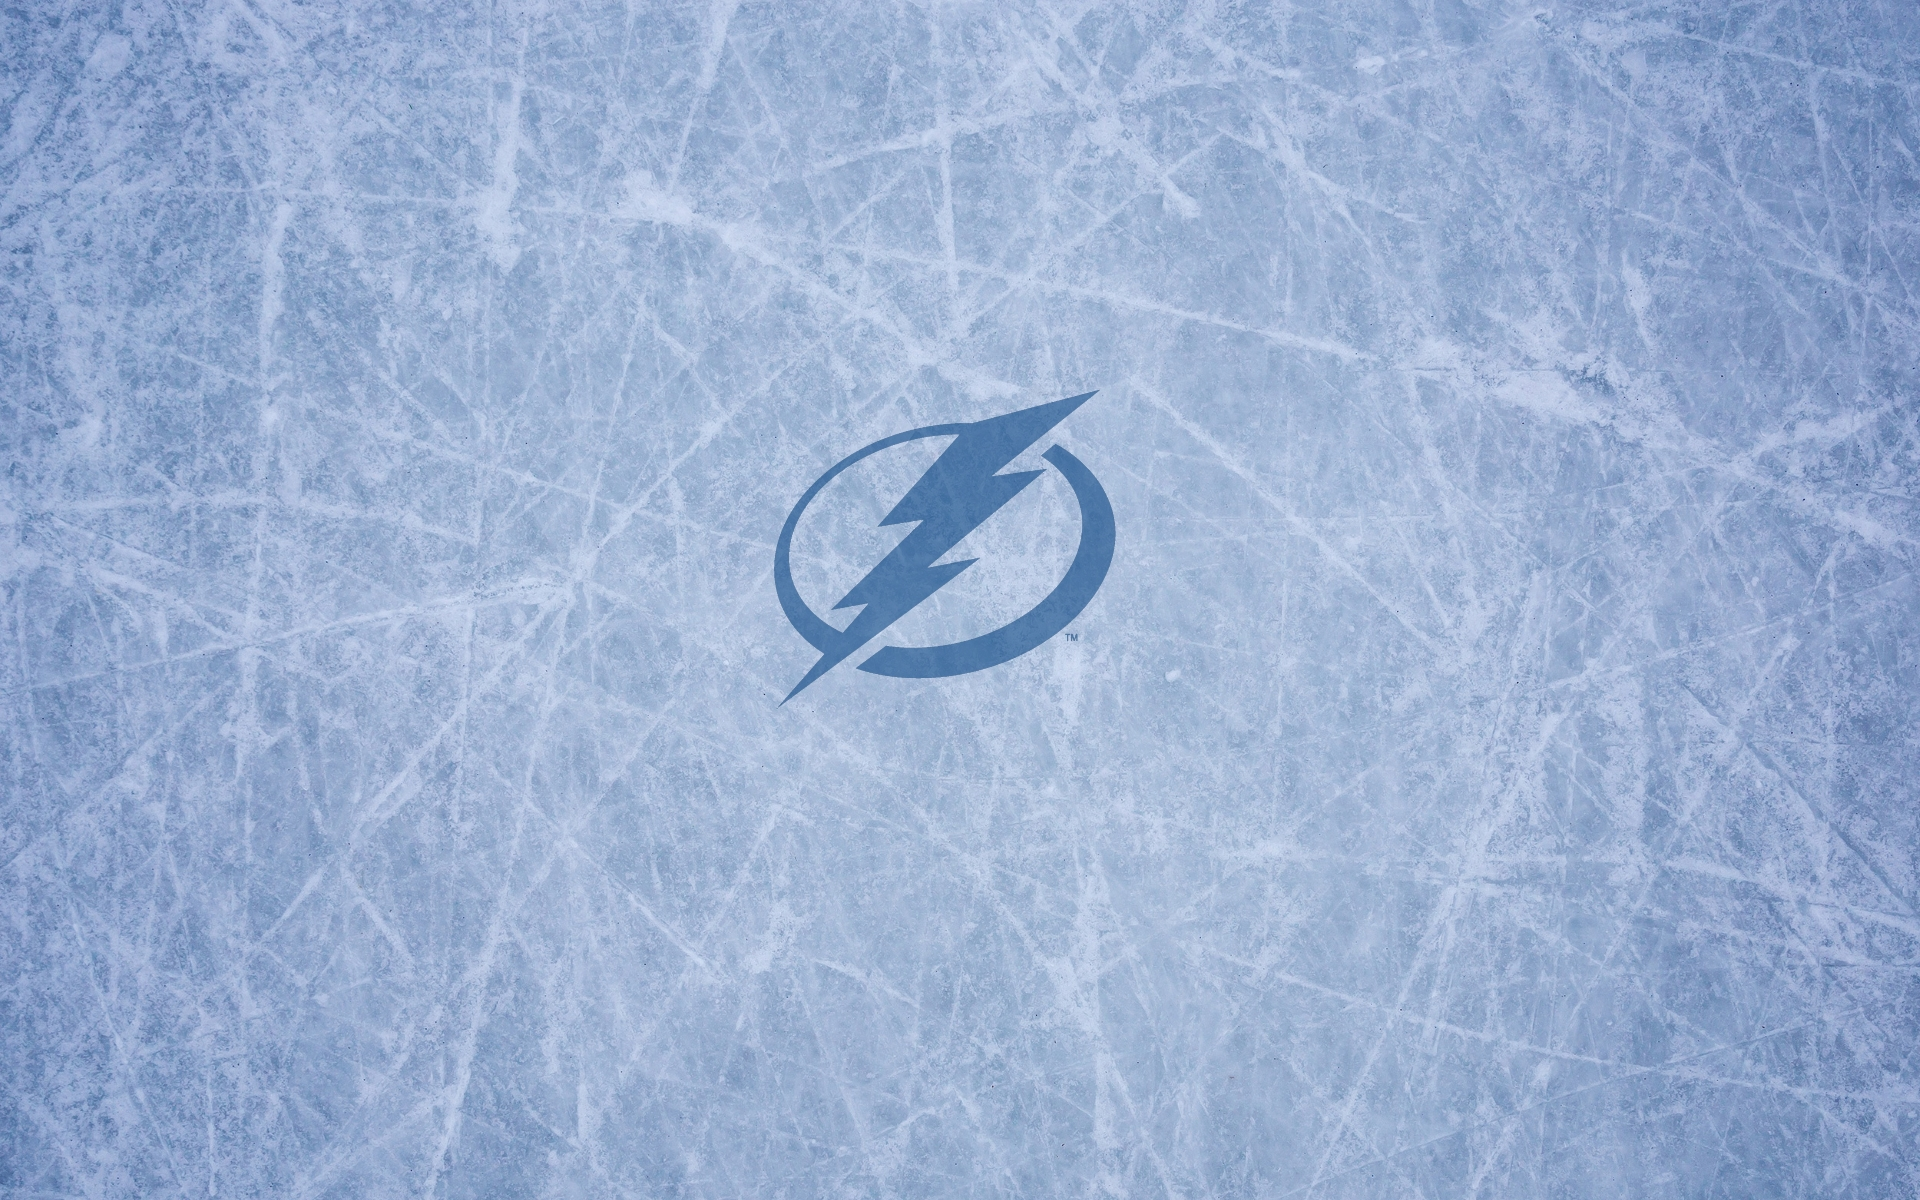 37 Lighting Tampa Bay, Tampa Bay Lightning Logos Download